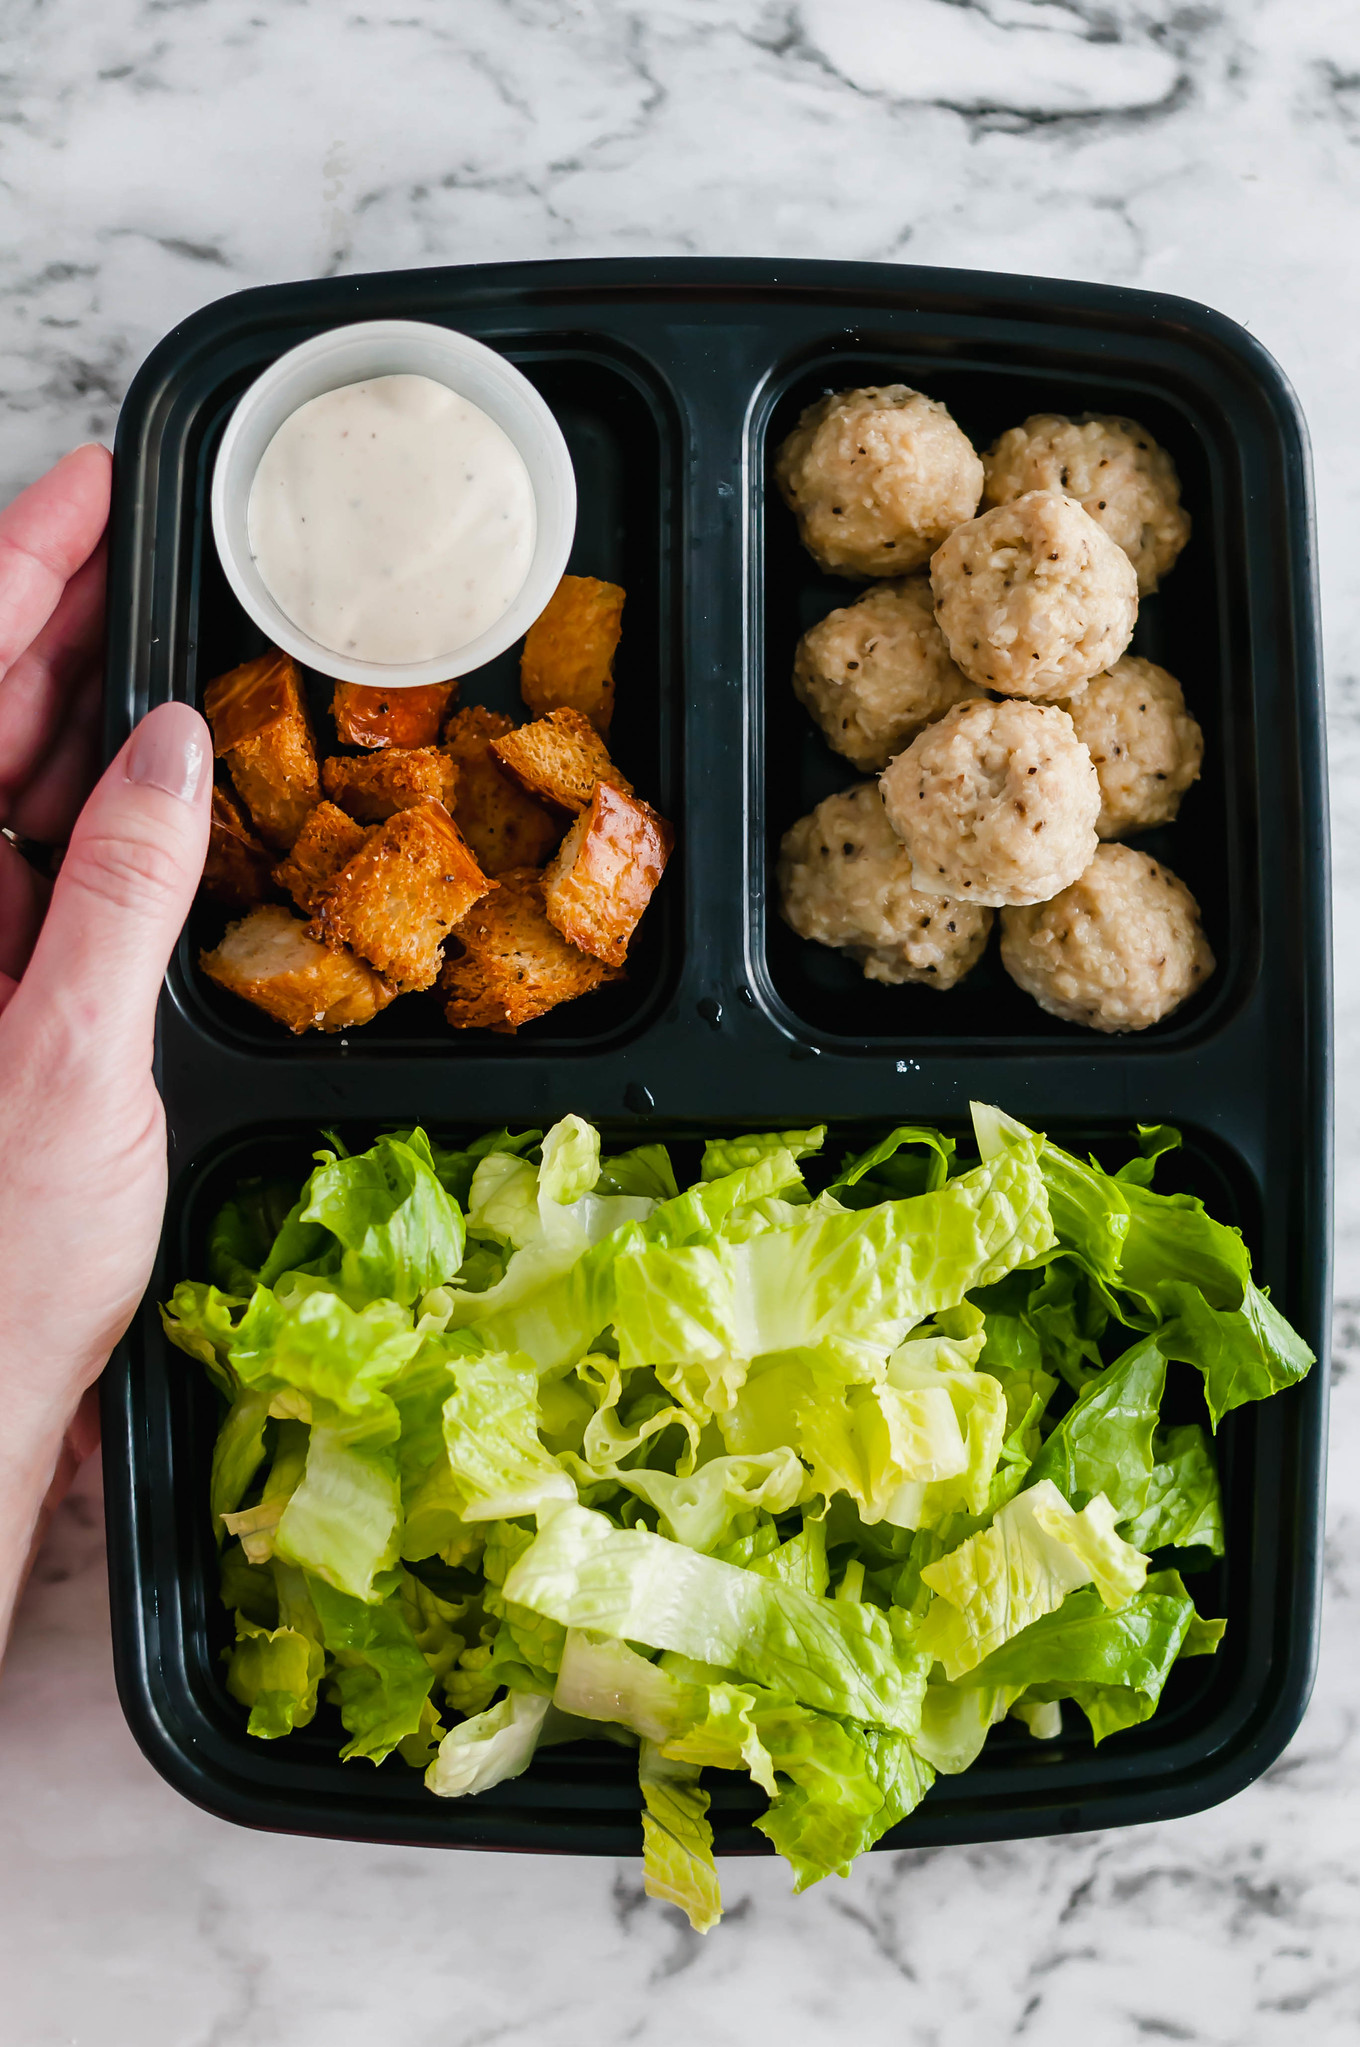 Salad Meal Prep is the perfect way to start out your New Year healthy. 45 minutes of prep results in a weeks worth of healthy and delicious lunches. Caesar dressing, homemade croutons and mini chicken meatballs add lots of flavor to the mix.